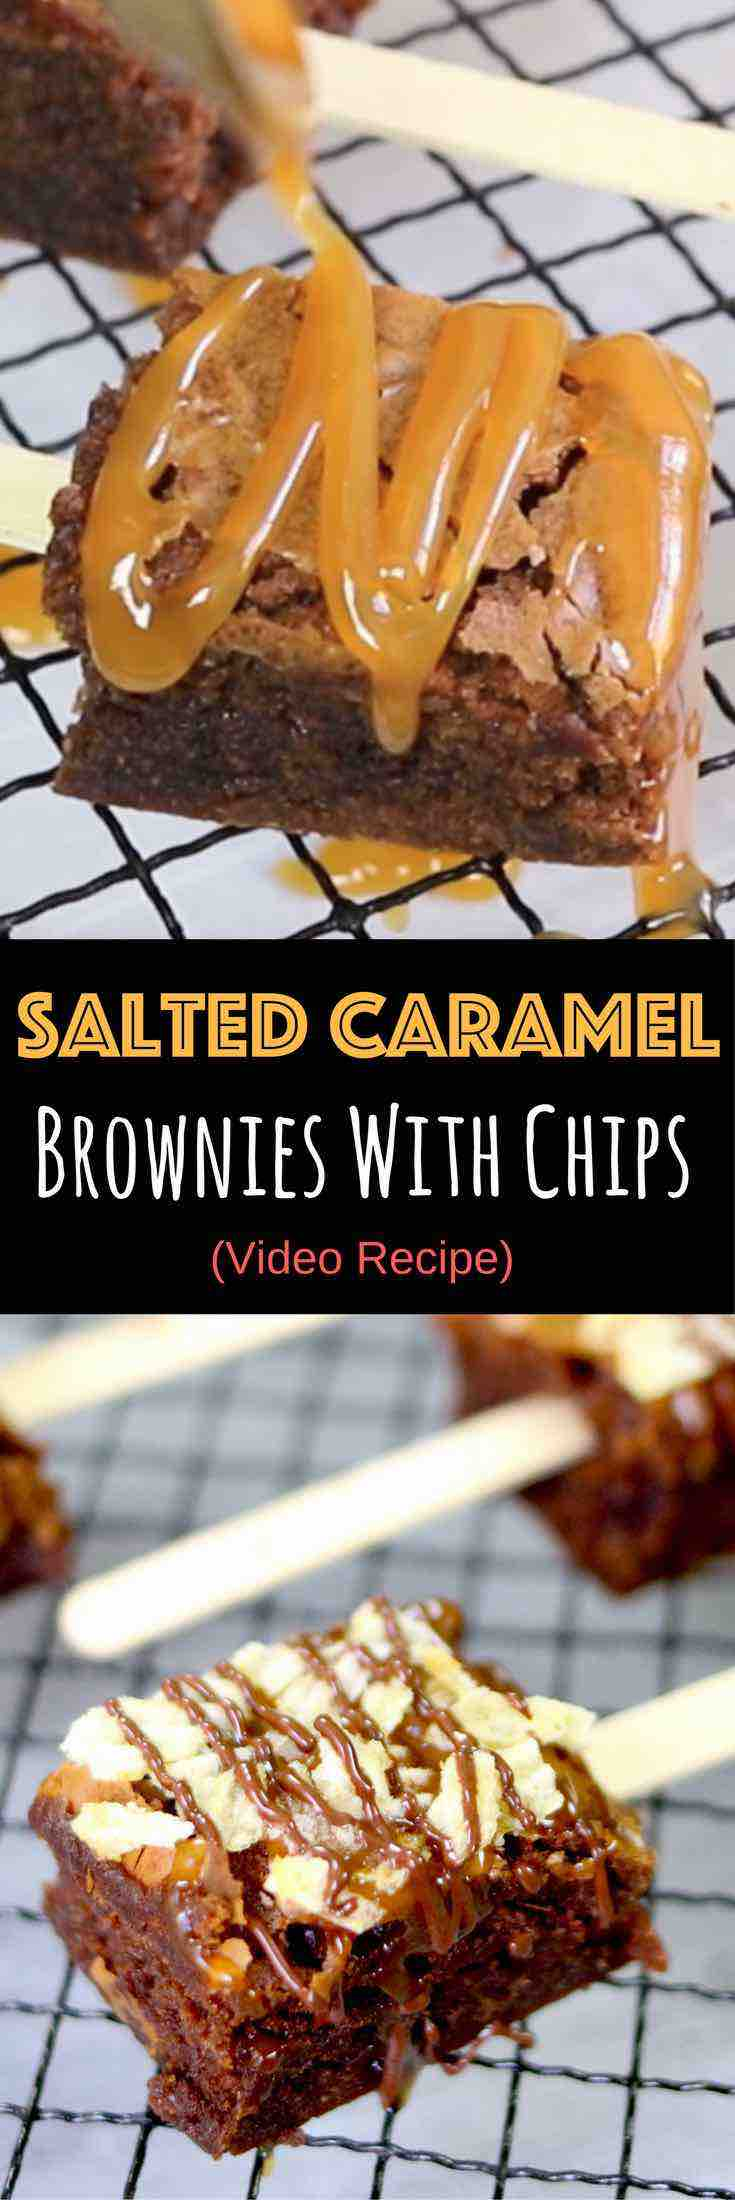 Salted Caramel Brownies With Chips – Soft and Moist brownies topped with gooey caramel and potato chips, then drizzled with melted chocolate. The sweet and salty make a perfect combination in these brownie bites. It's pretty amazing! So easy and so delicious! Quick and easy recipe. Party Food. Video recipe. | Tipbuzz.com